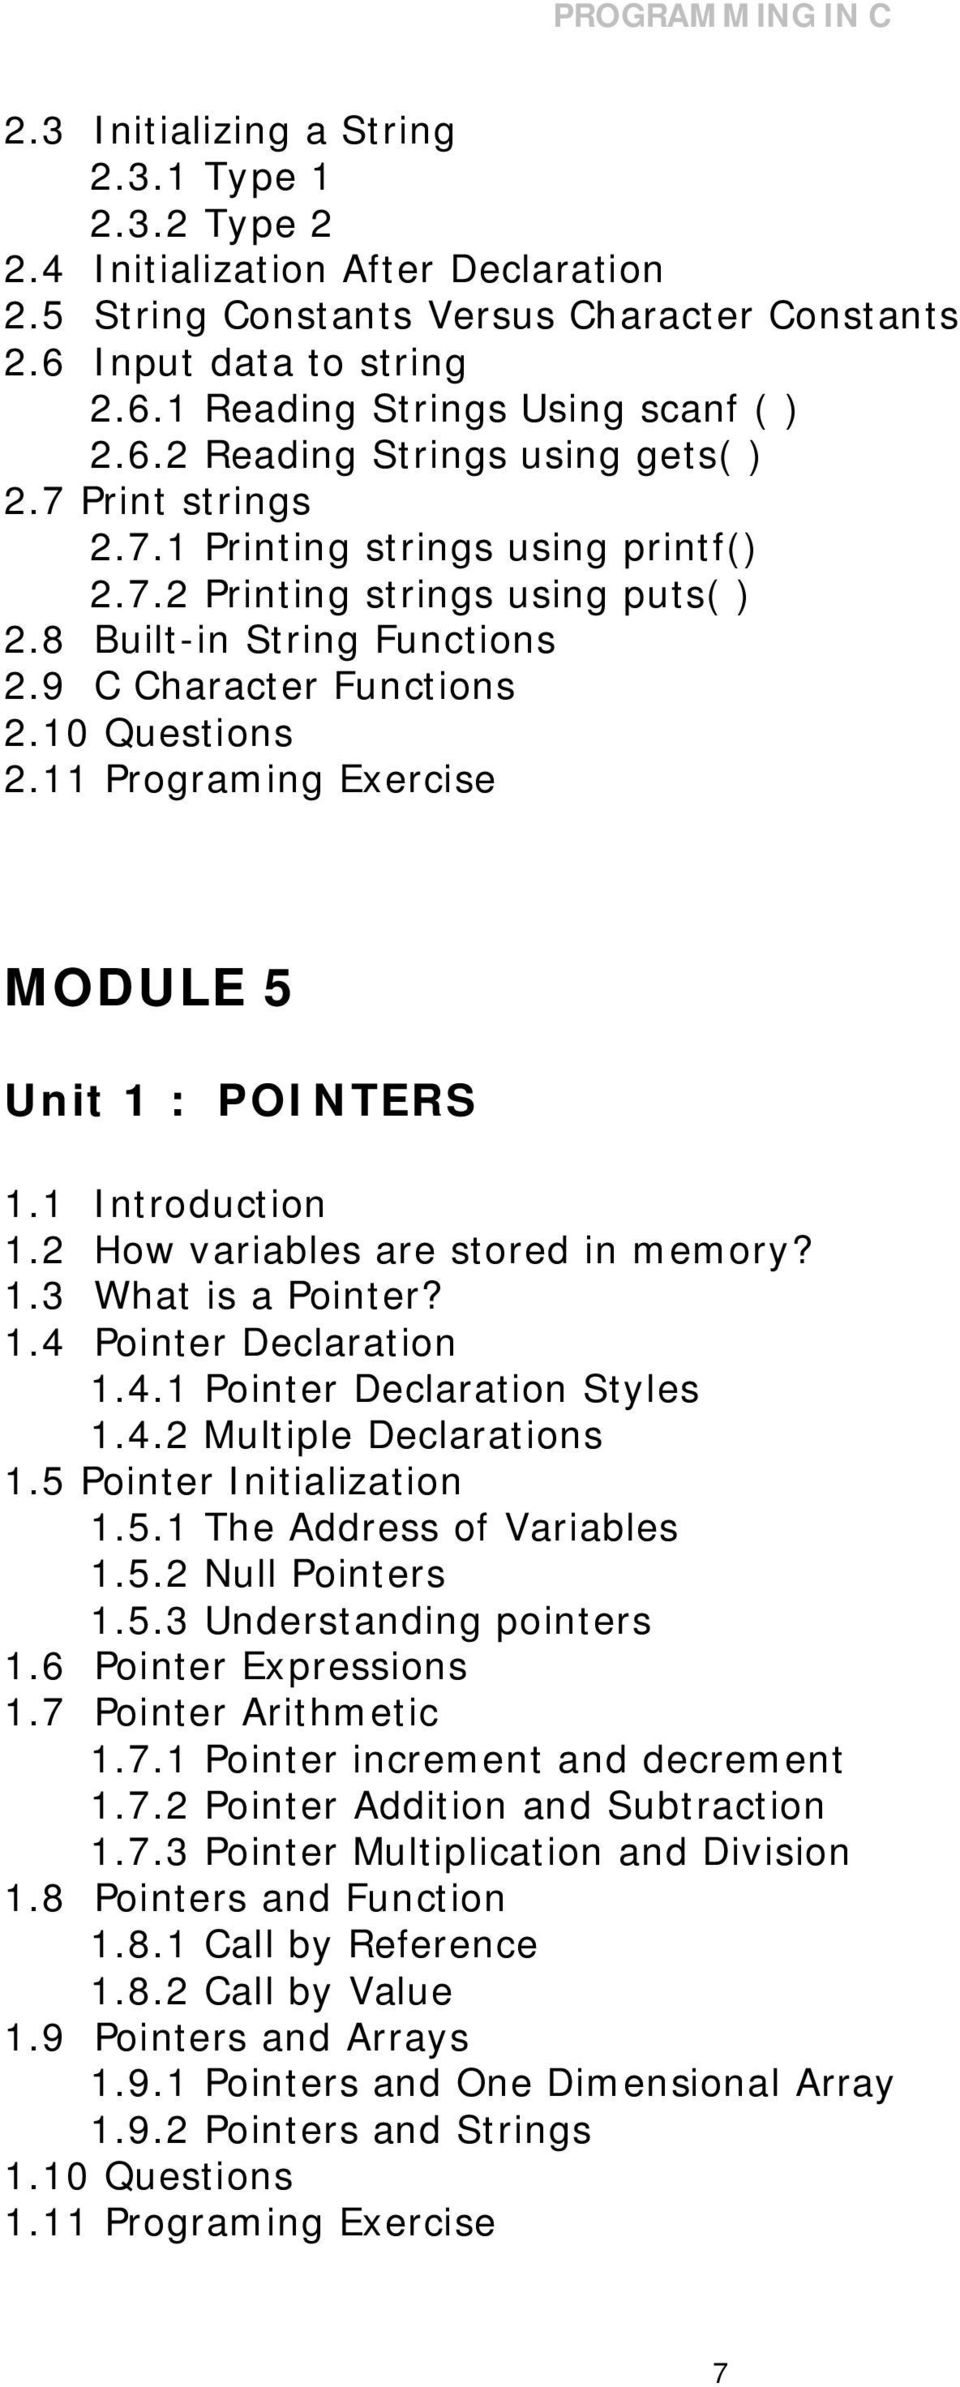 11 Programing Exercise MODULE 5 Unit 1 : POINTERS 1.1 Introduction 1.2 How variables are stored in memory? 1.3 What is a Pointer? 1.4 Pointer Declaration 1.4.1 Pointer Declaration Styles 1.4.2 Multiple Declarations 1.